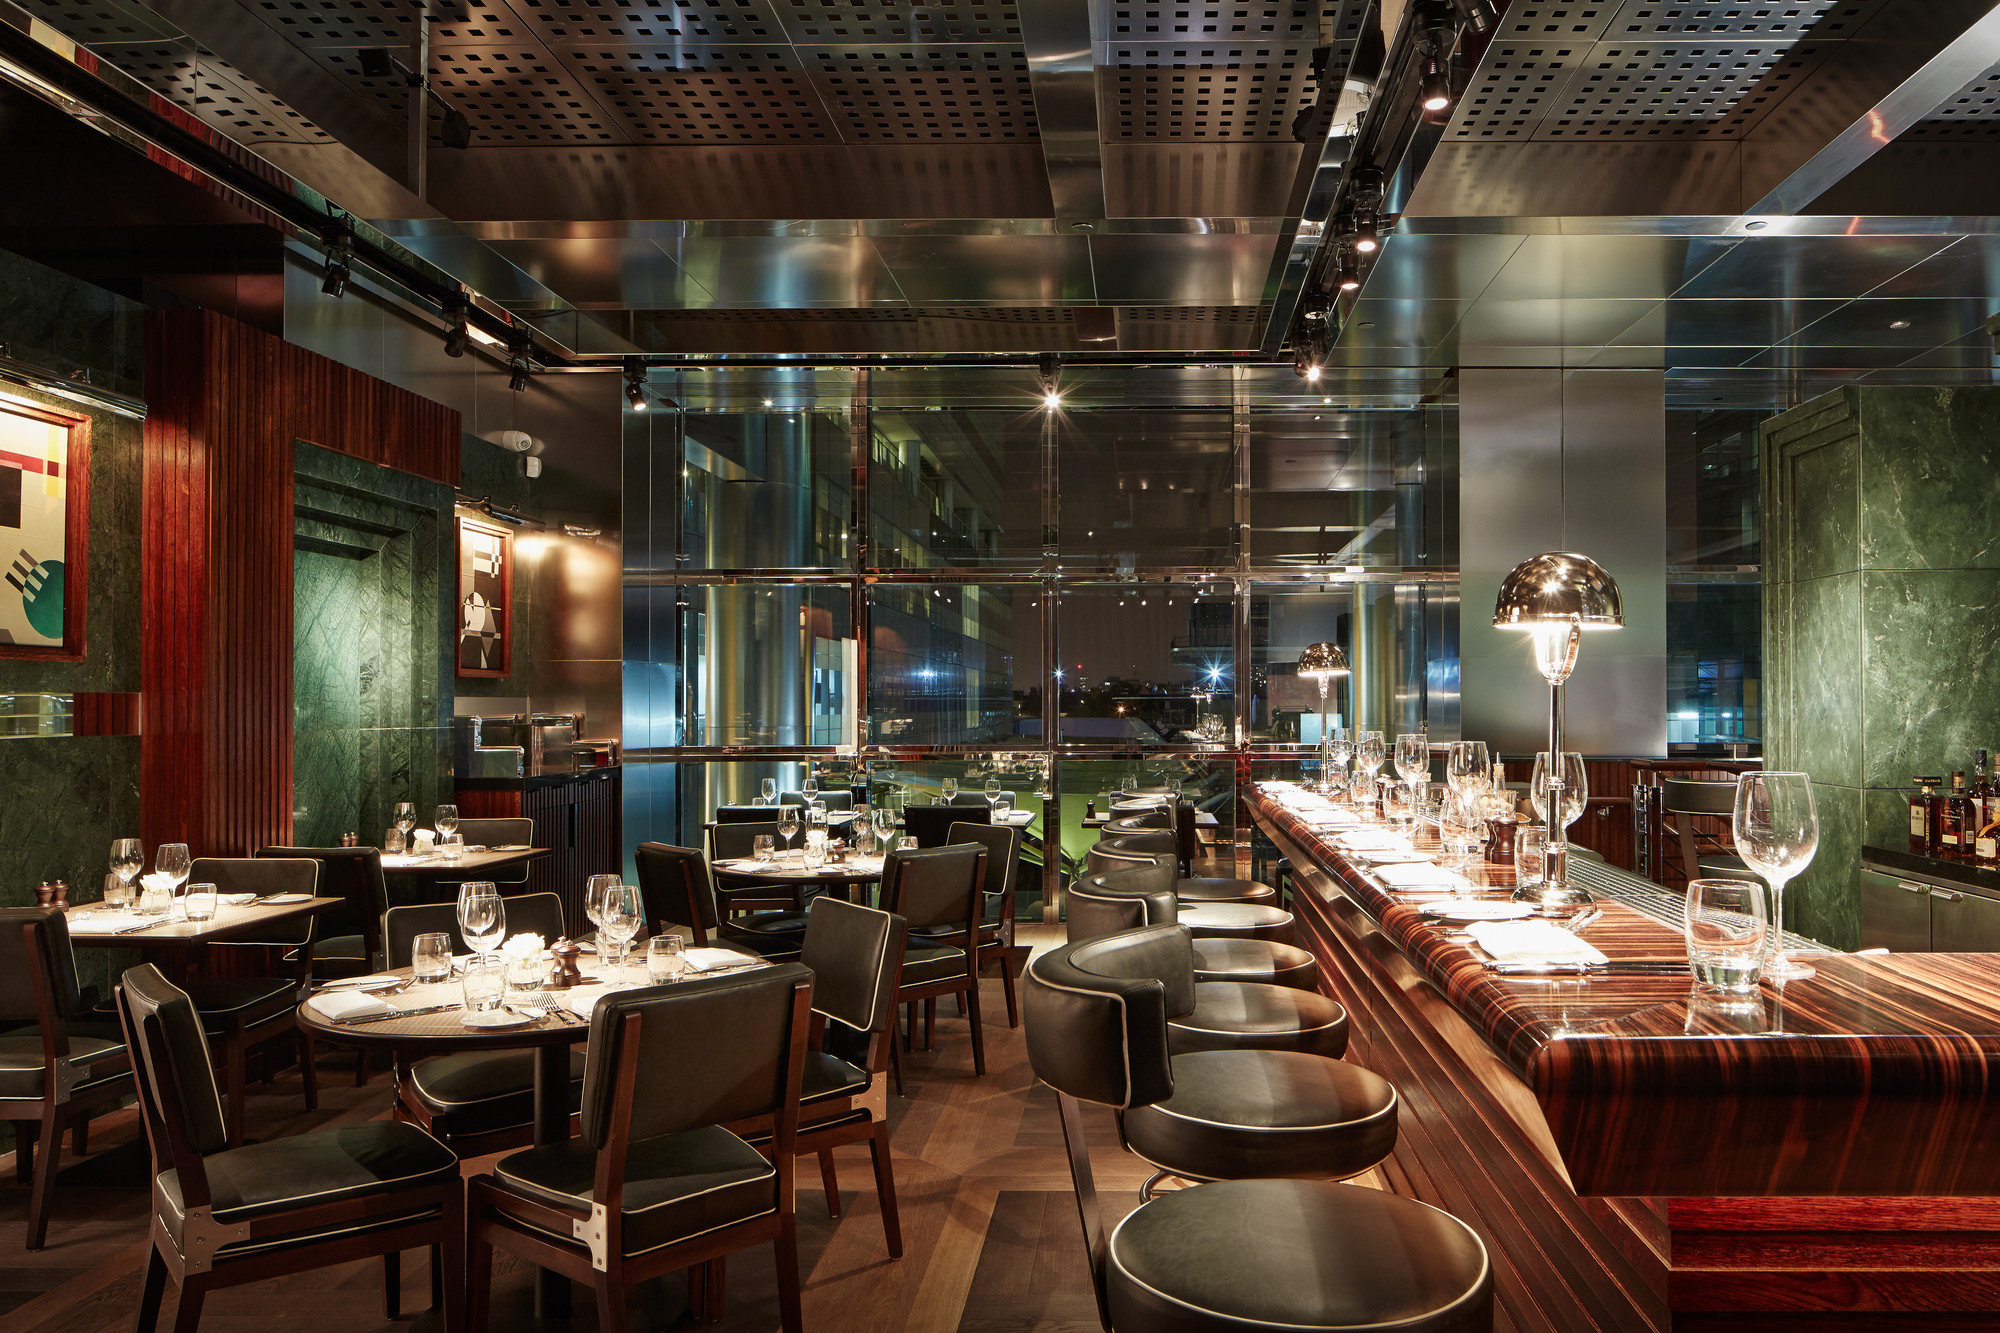 2014 Restaurant & Bar Design Award Winners | ArchDaily